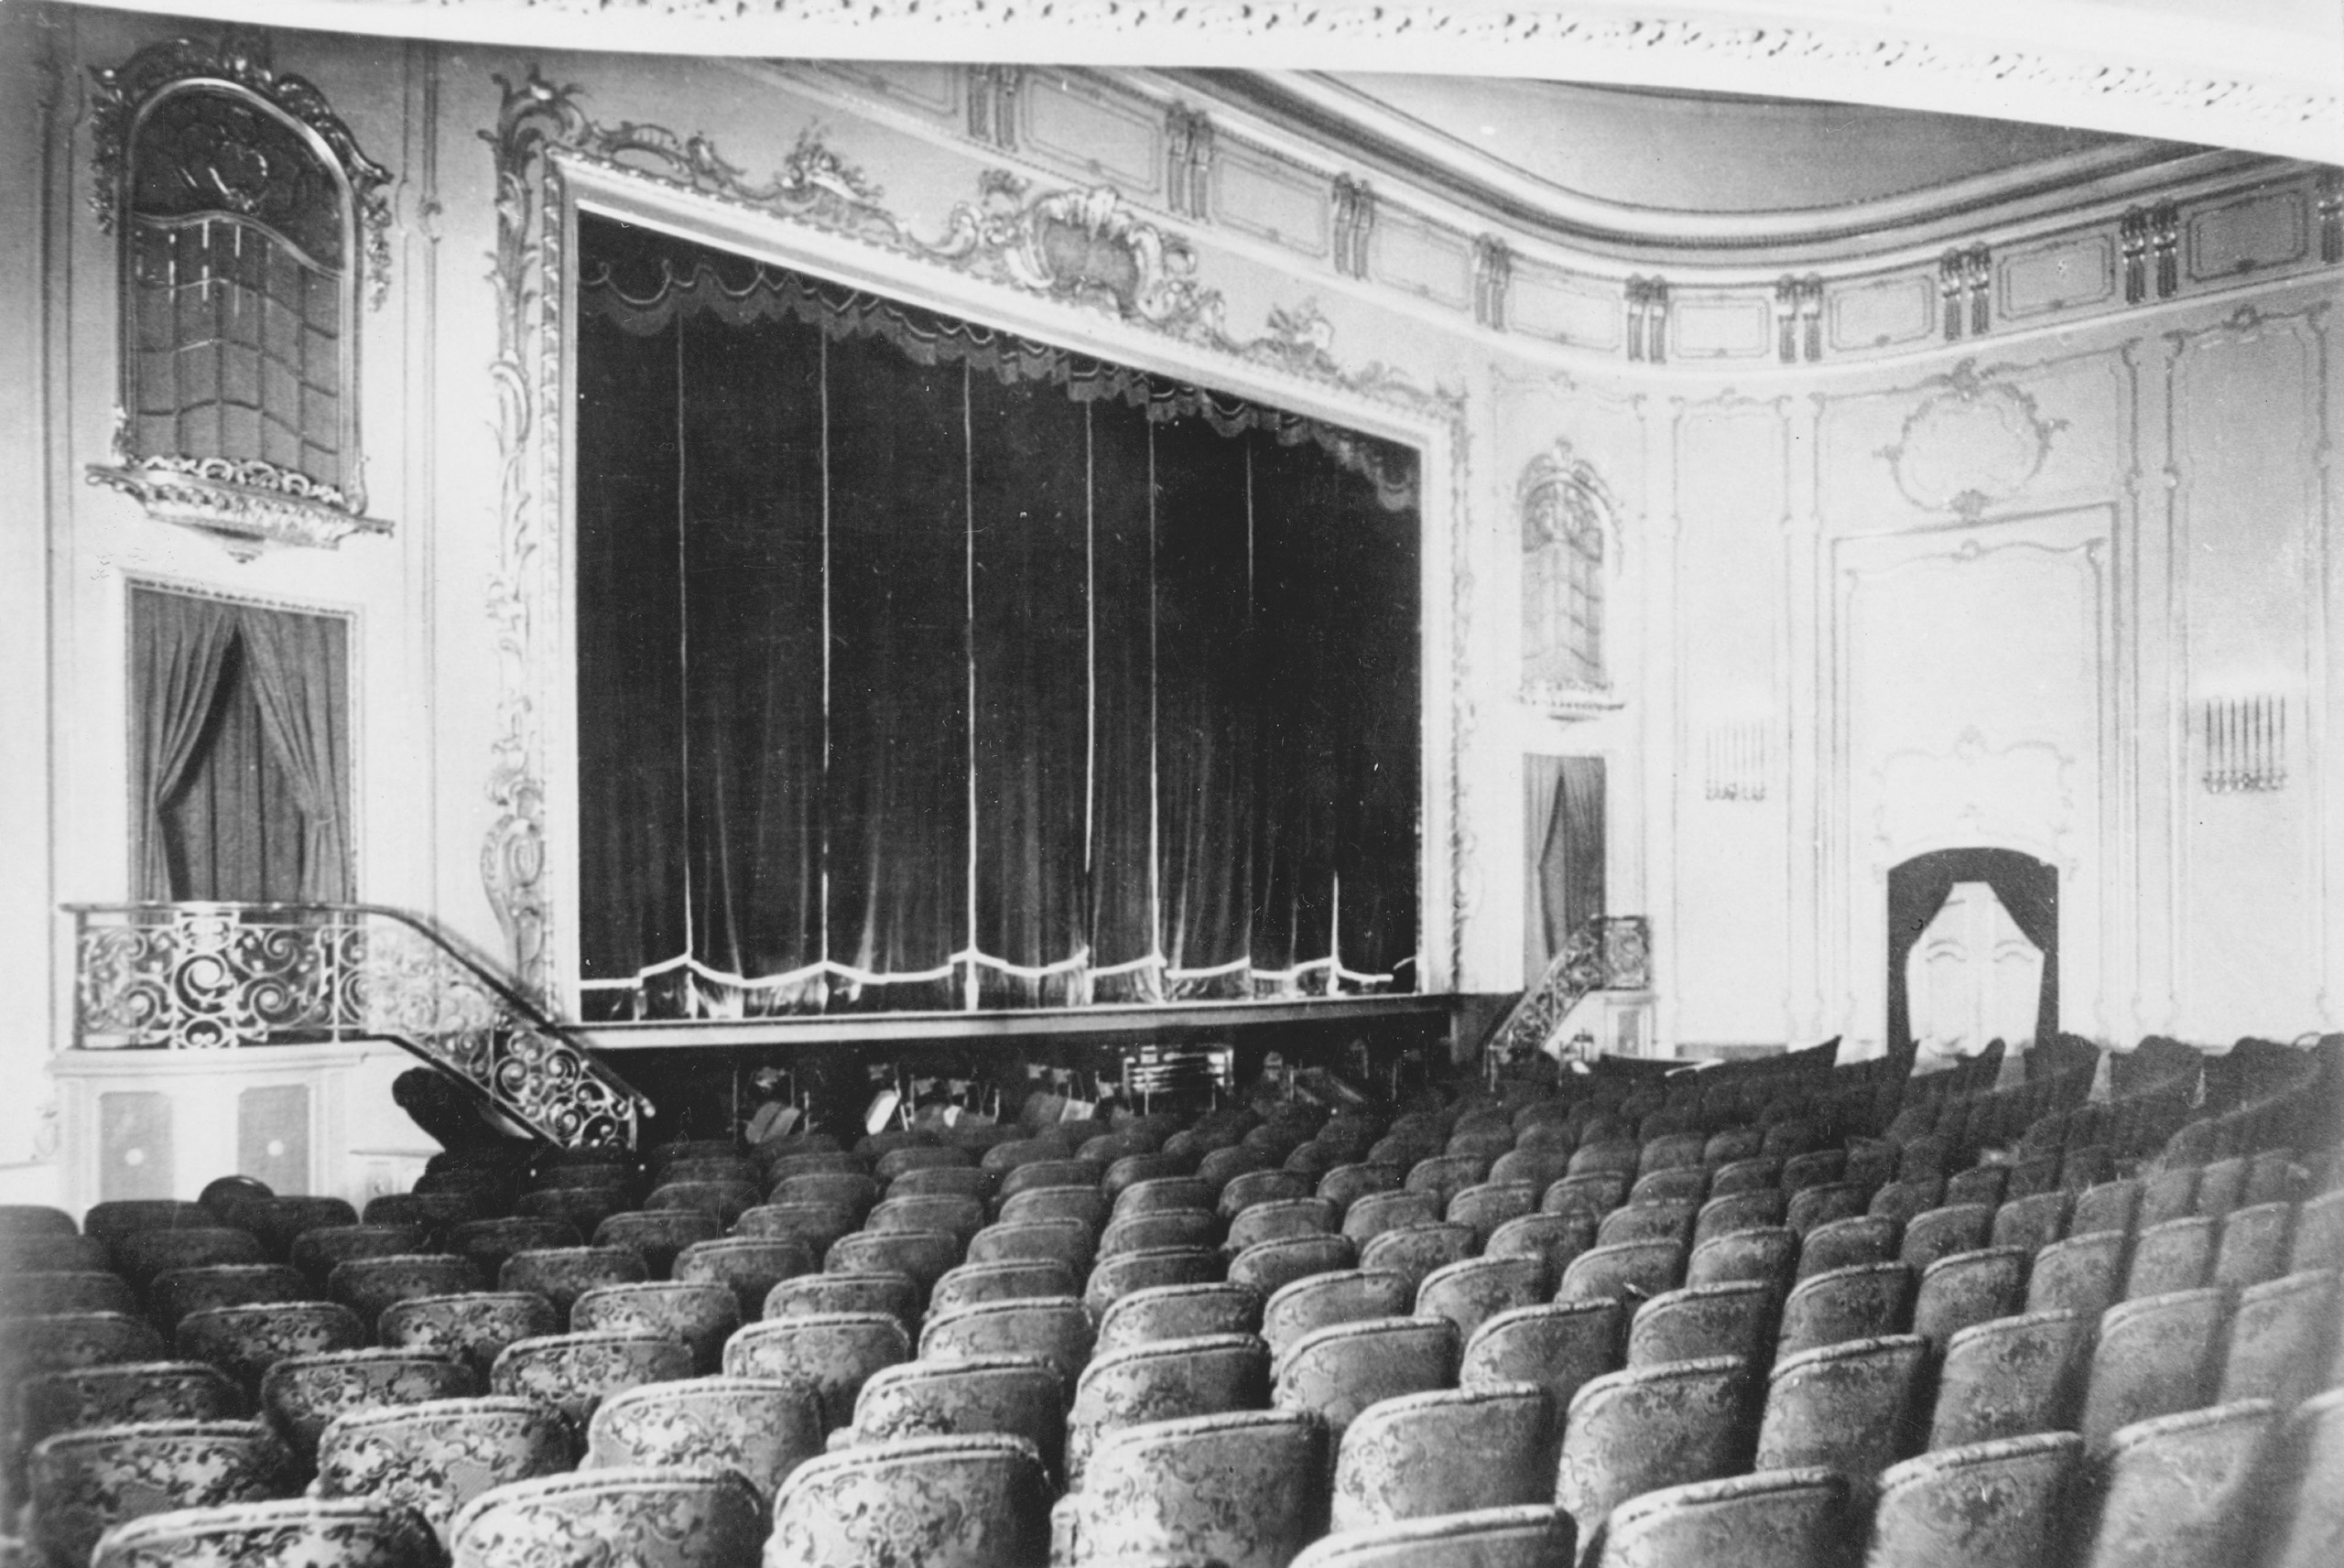 Black and white photo of the auditorium facing the screen